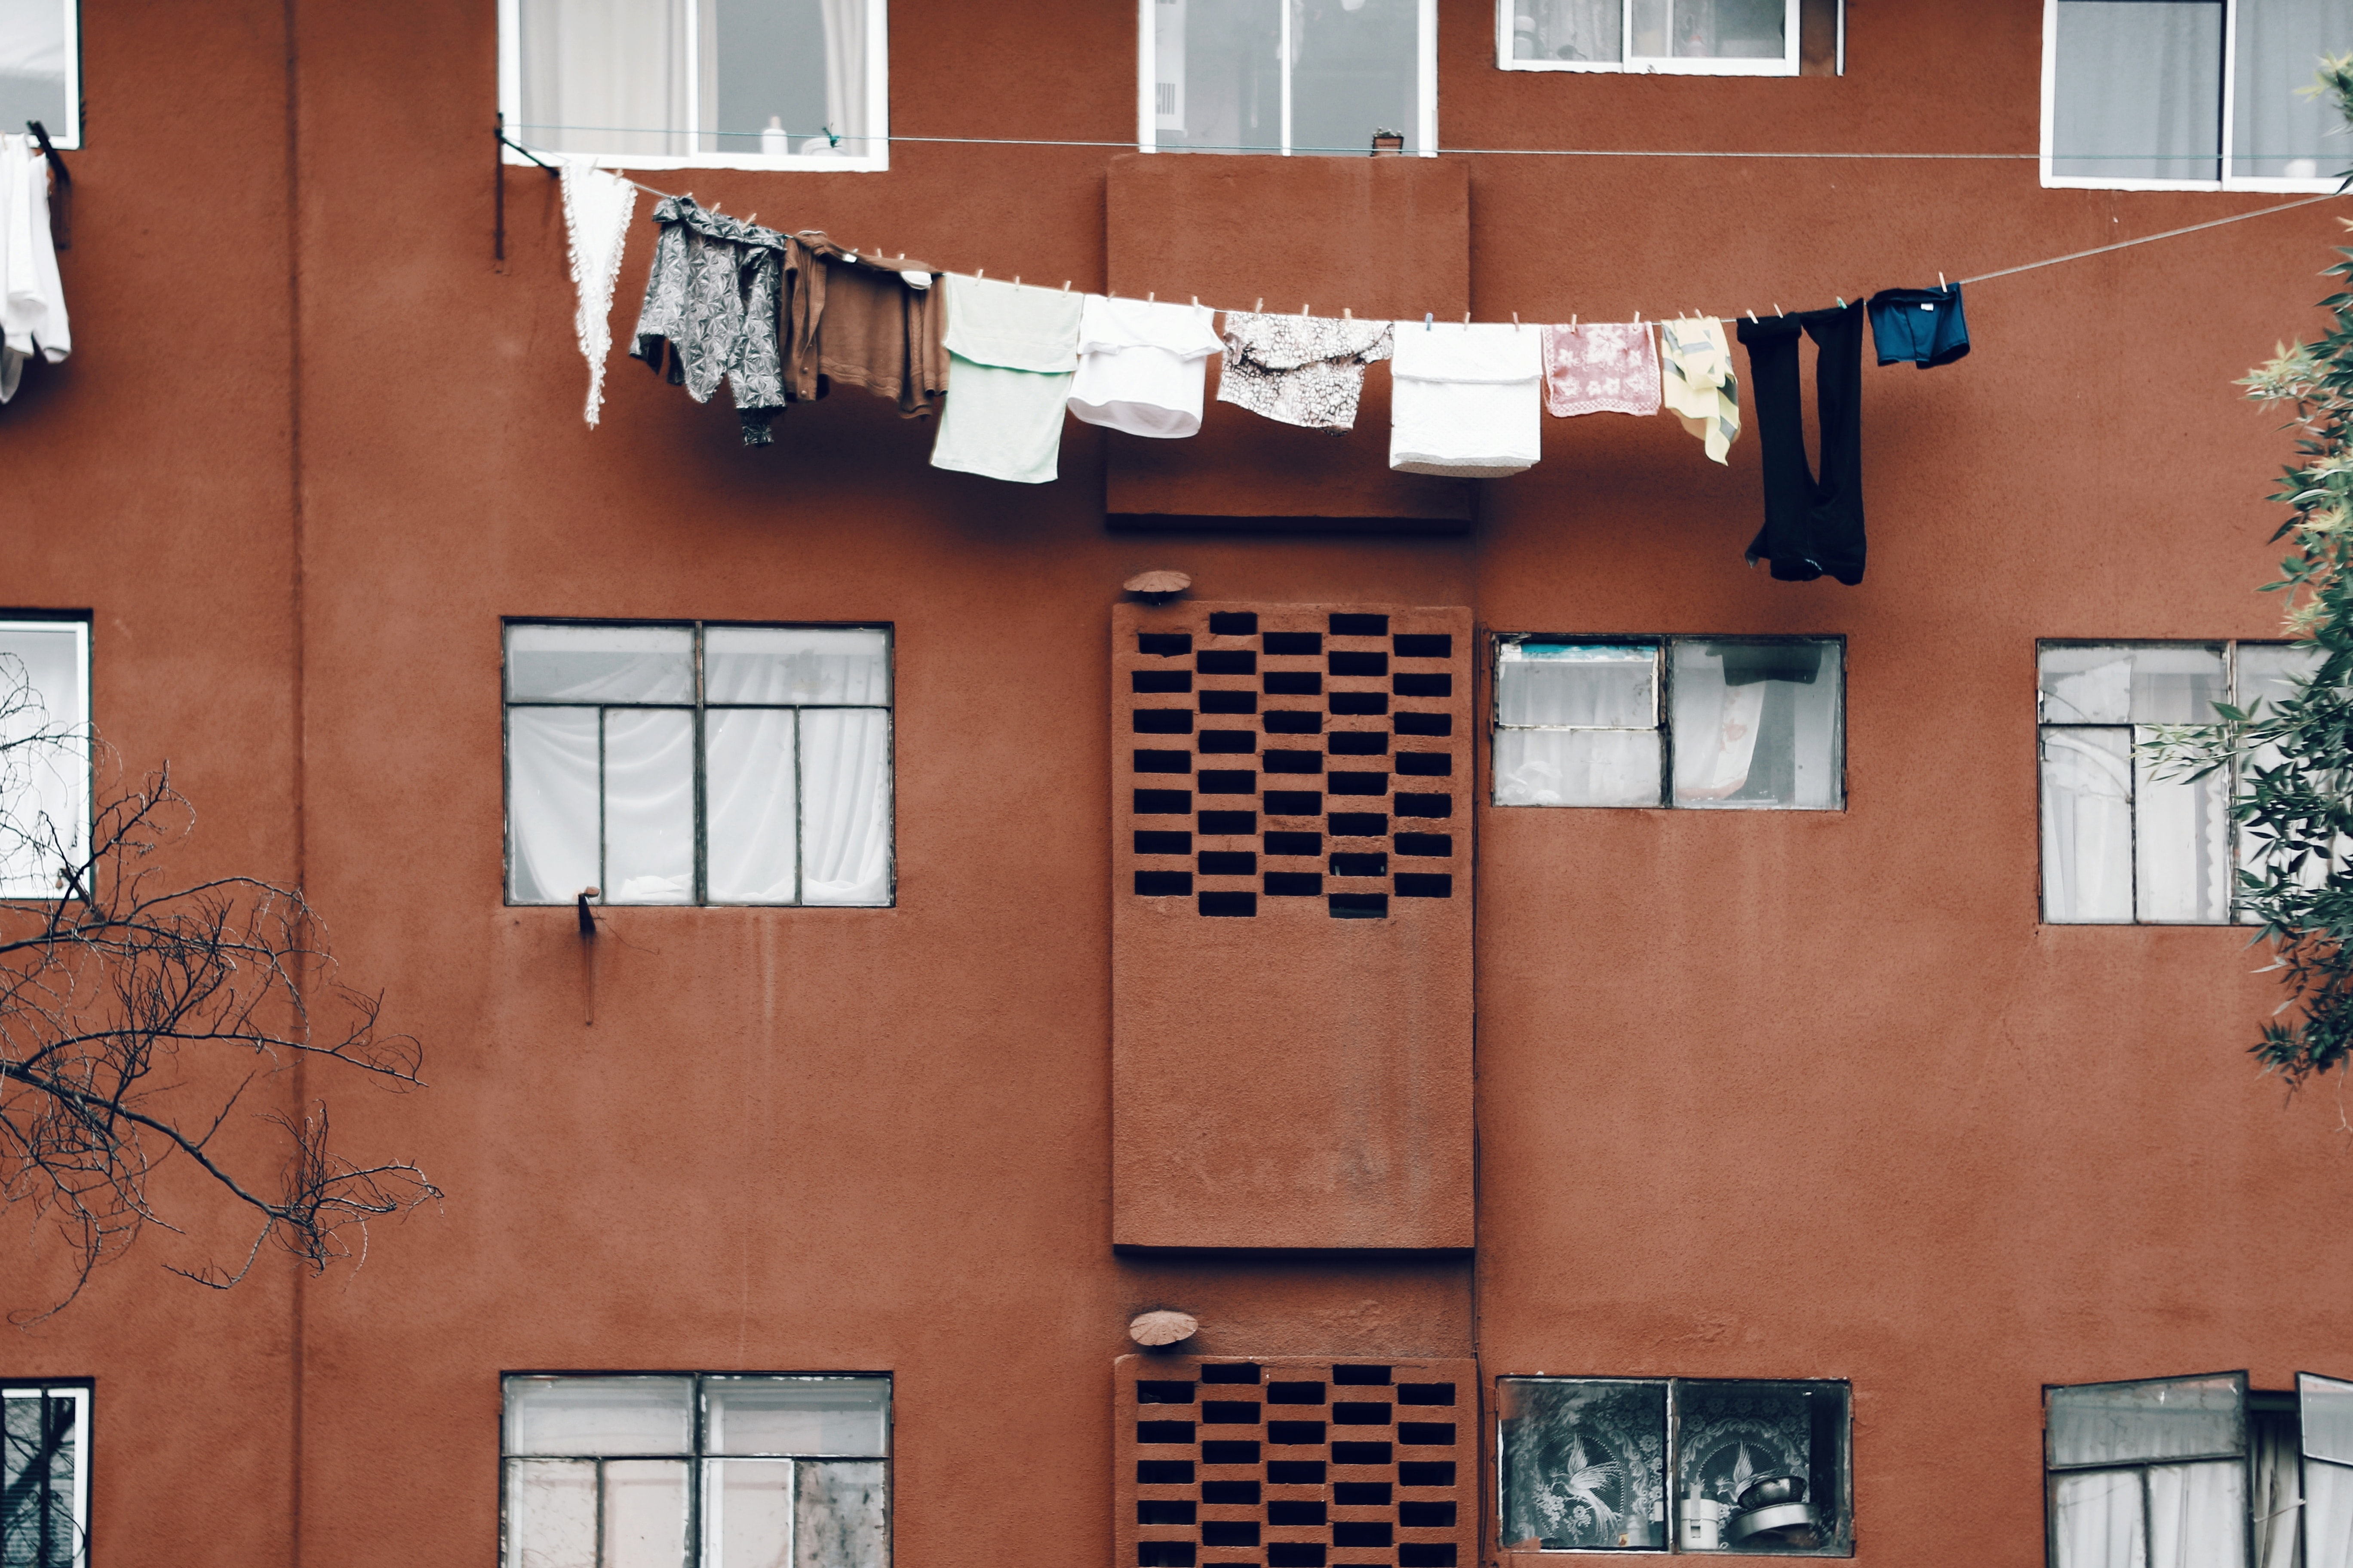 clothes hanging during daytime